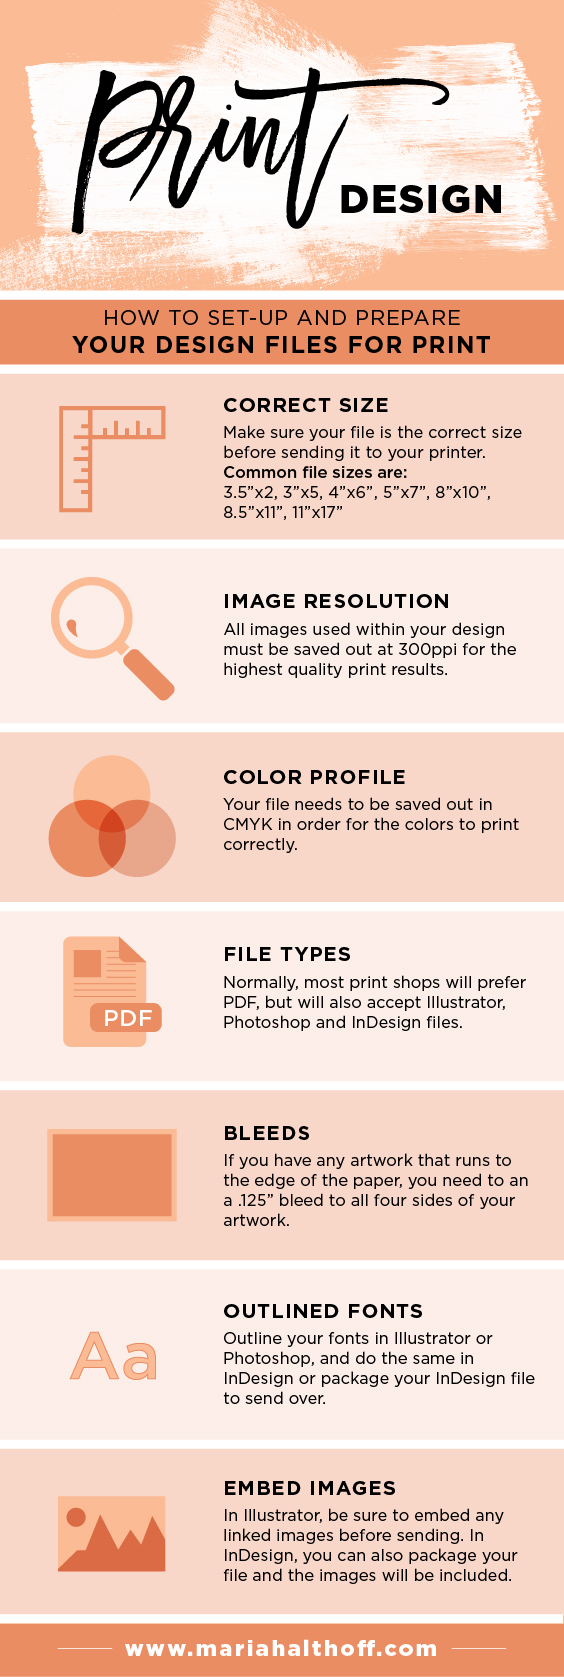 How to Set-Up and Prepare your Design Files for Print